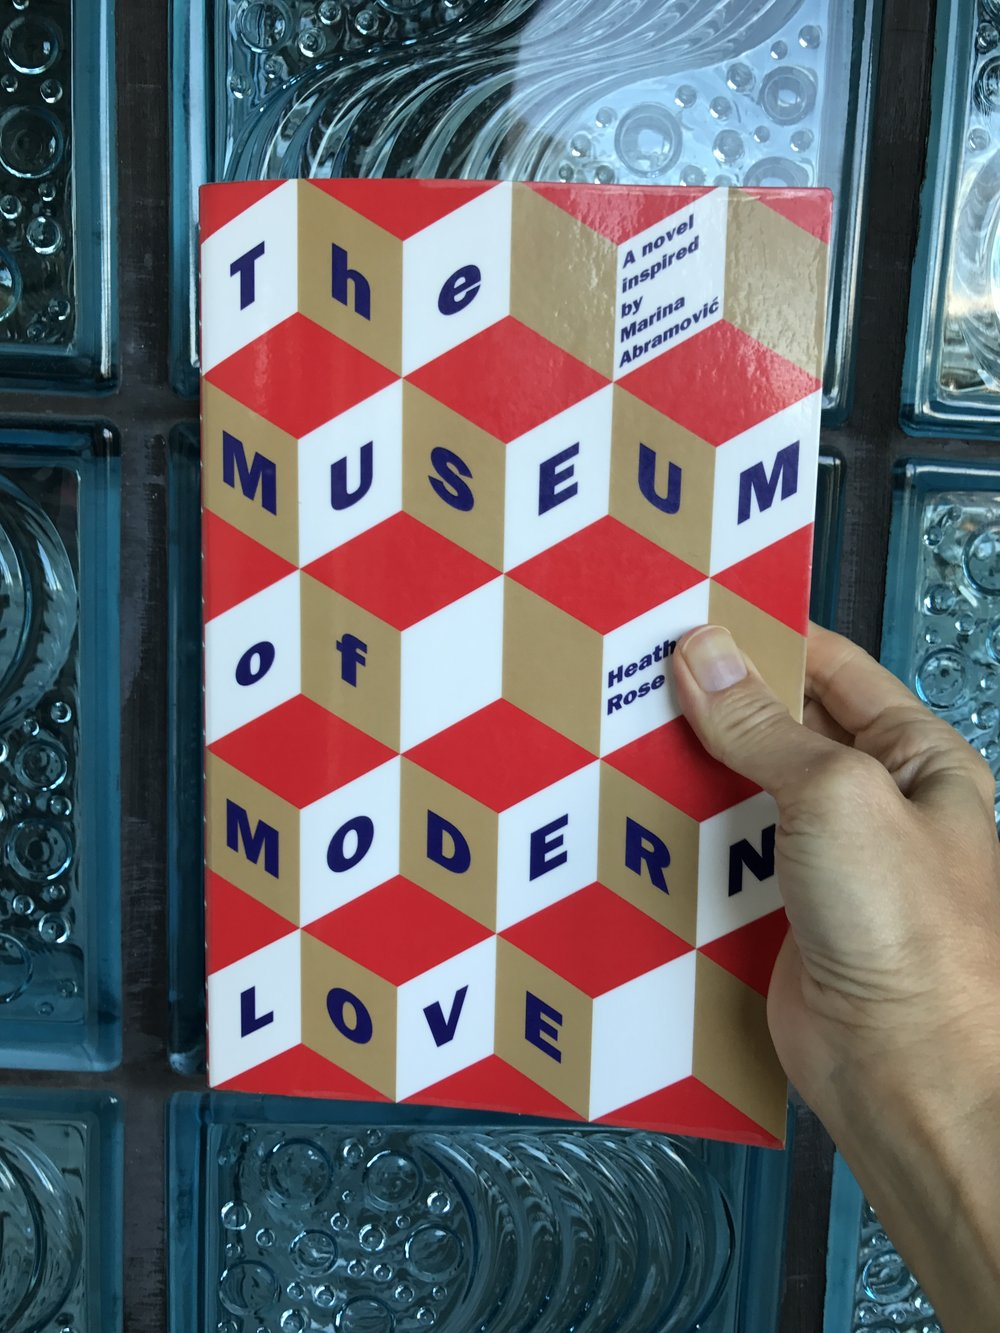 'The Museum Of Modern Love' Blue period: The striking Op Art referencing cover against my architectural Italian glass wall referencing Art Deco and 'Scarface' era Miami. Showing again, that art is in everything. It is in every layer of our lives.